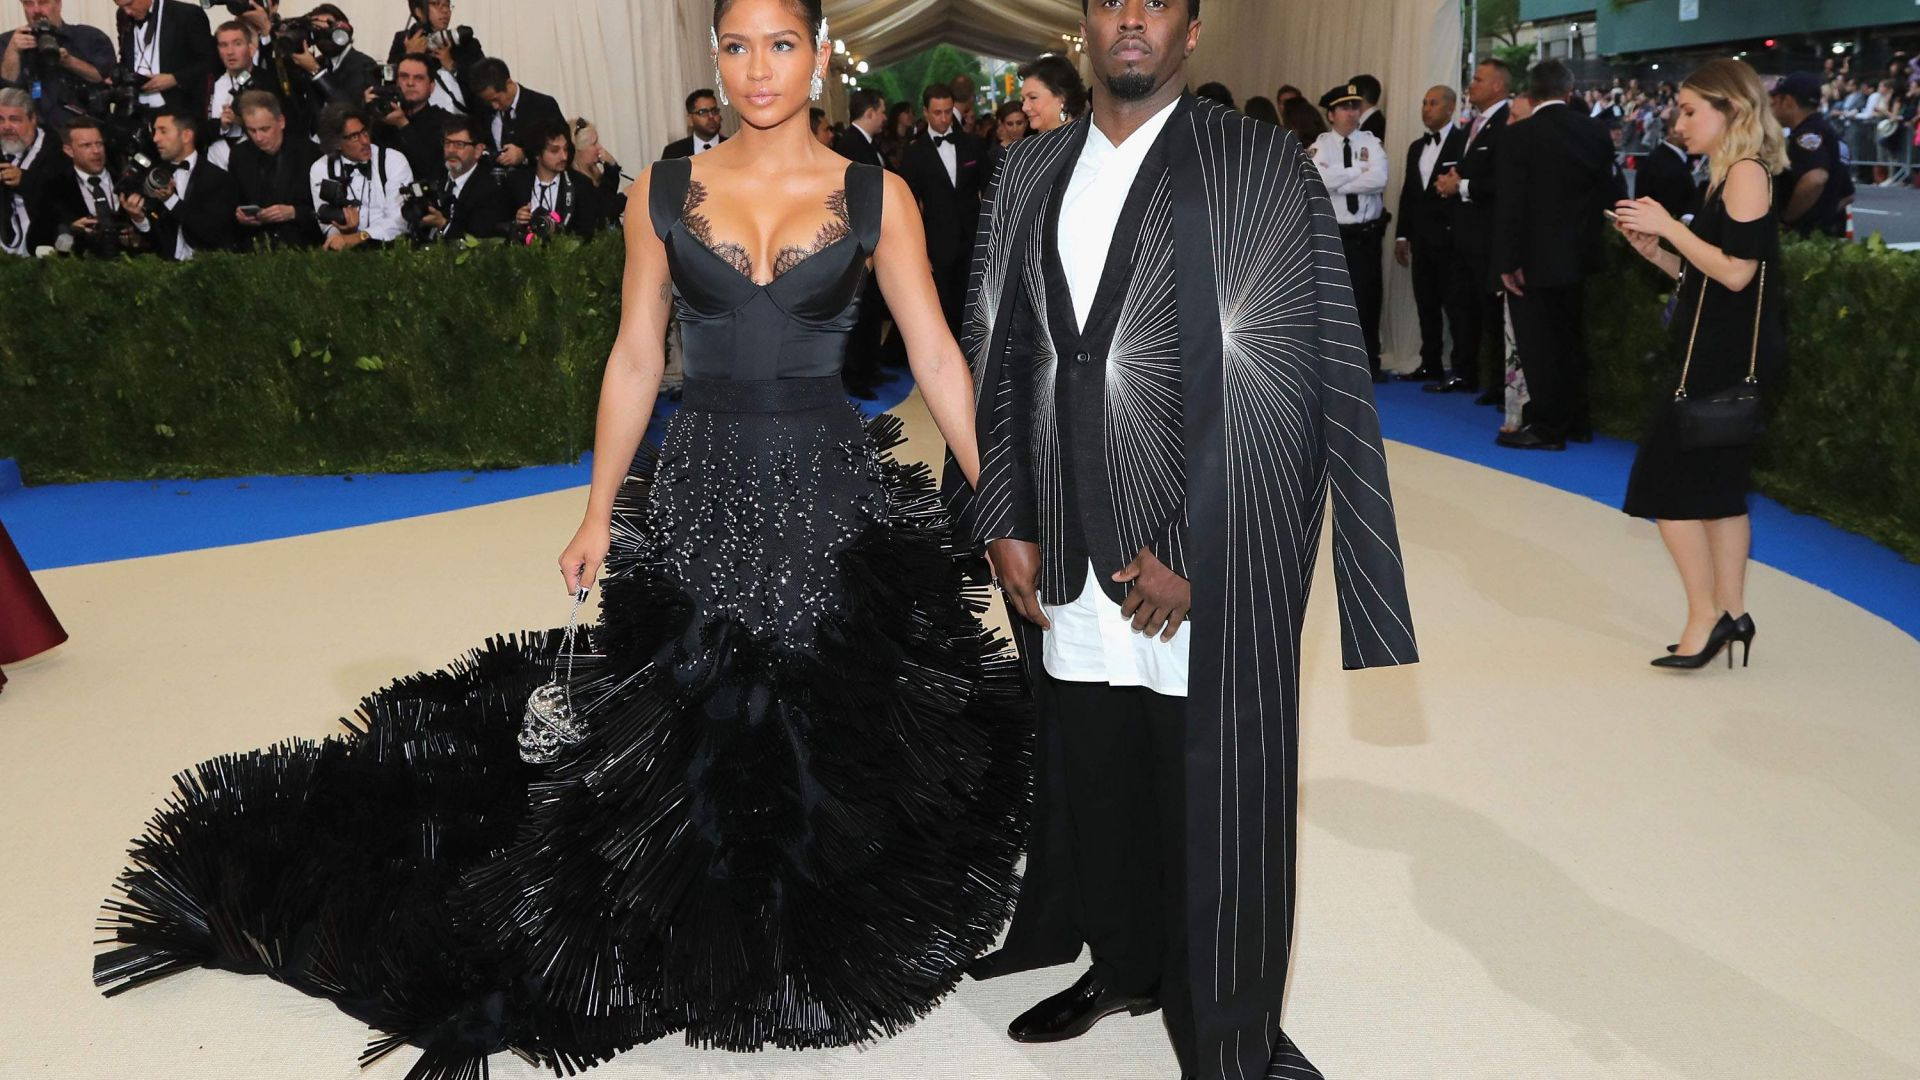 P Diddy, Met Gala 2017, dress, red carpet (horizontal)